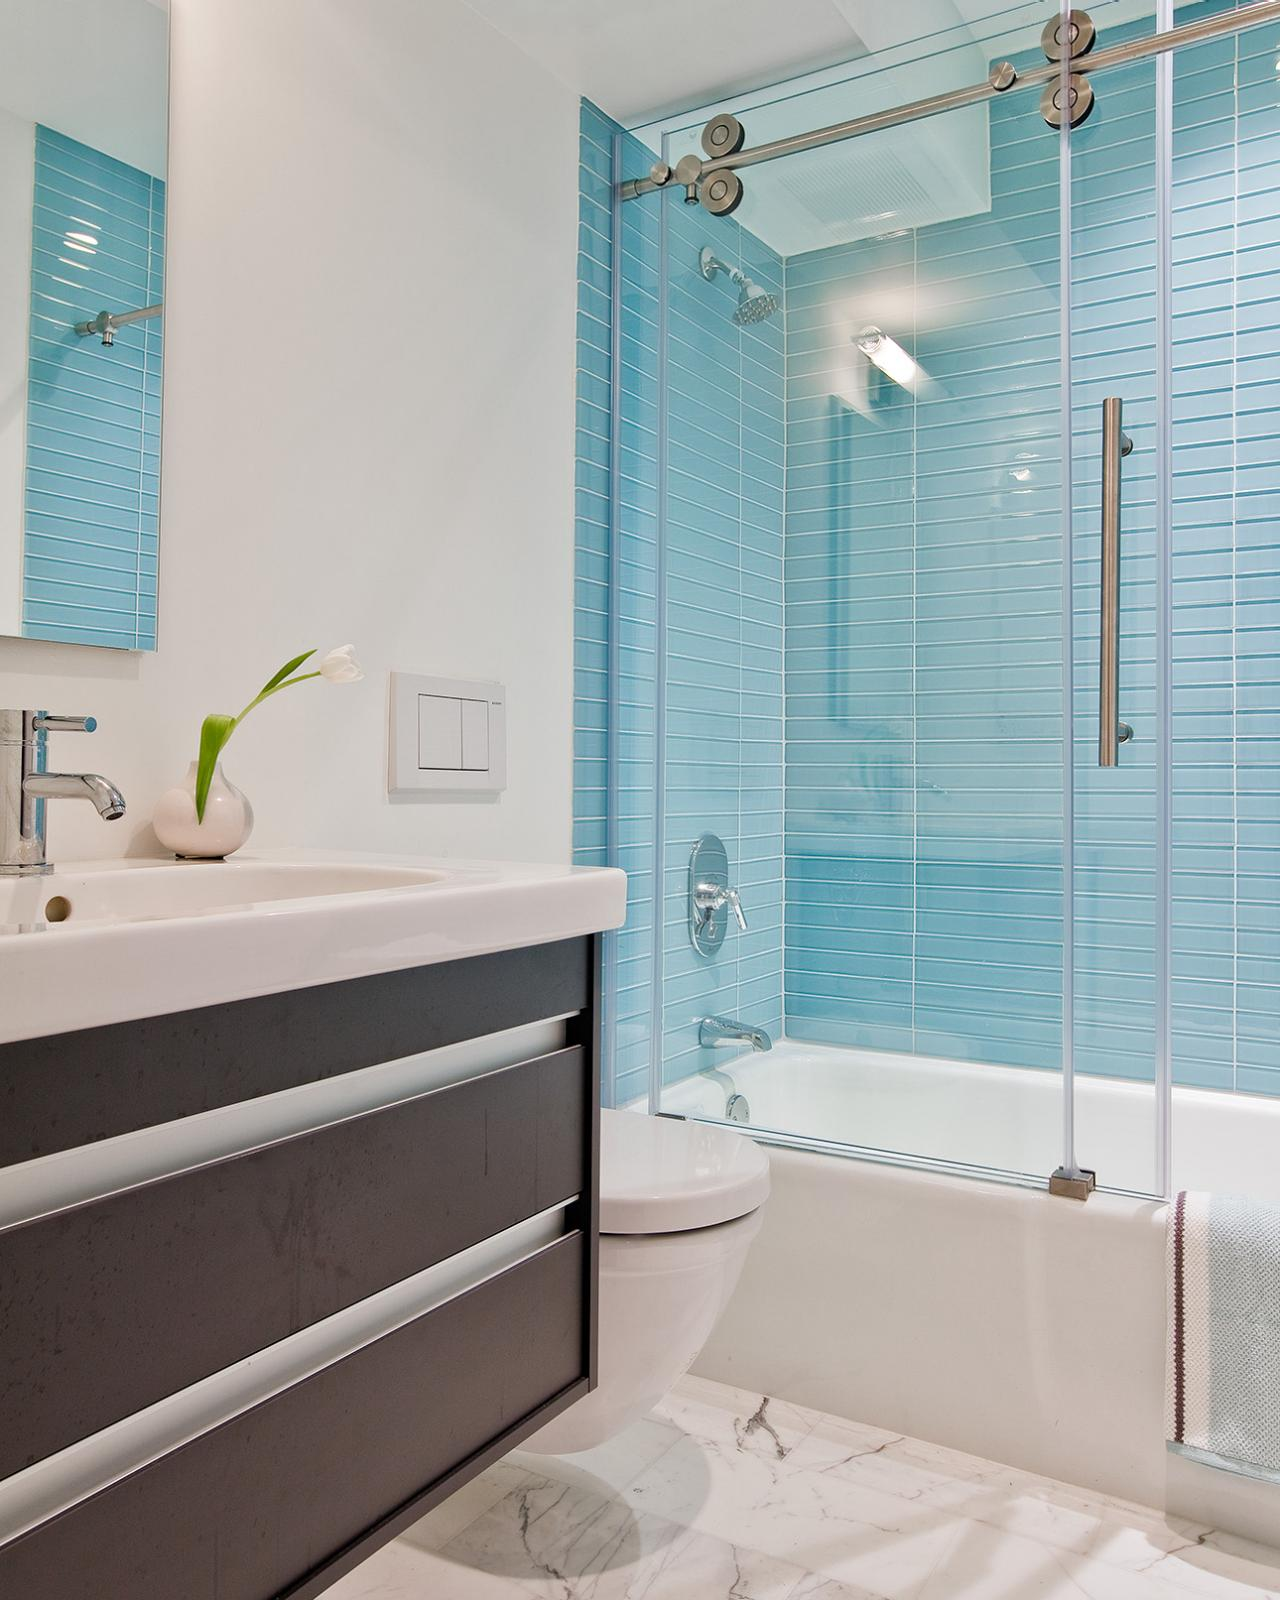 A bathroom with a sink and a shower Description generated with very high confidence